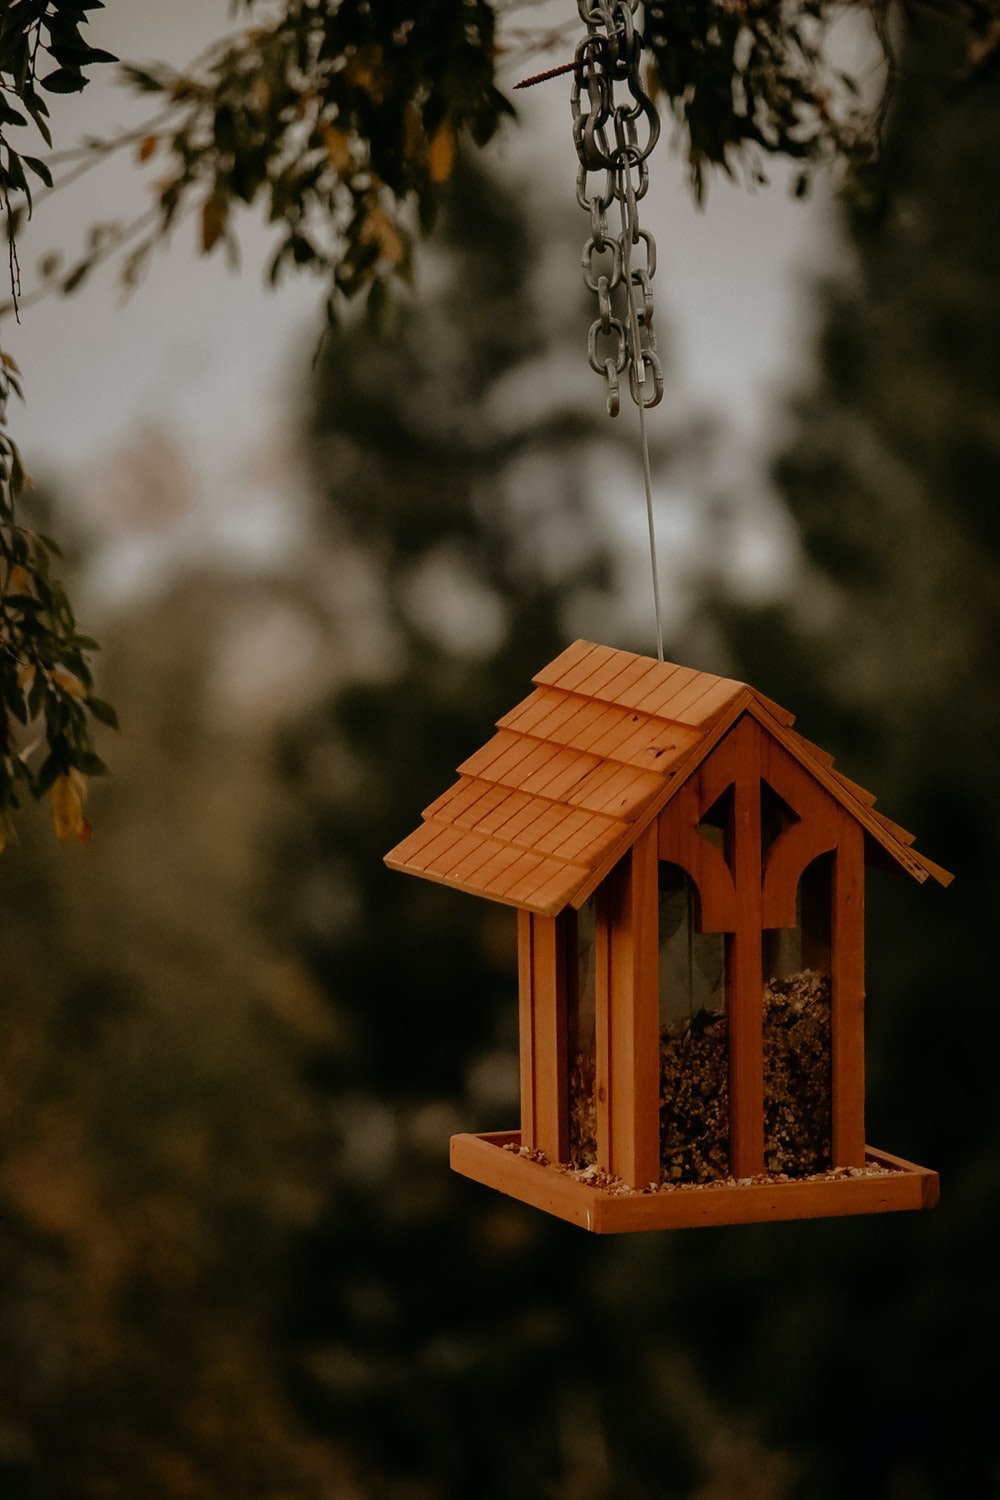 brown wooden bird house hanging on brown wooden tree